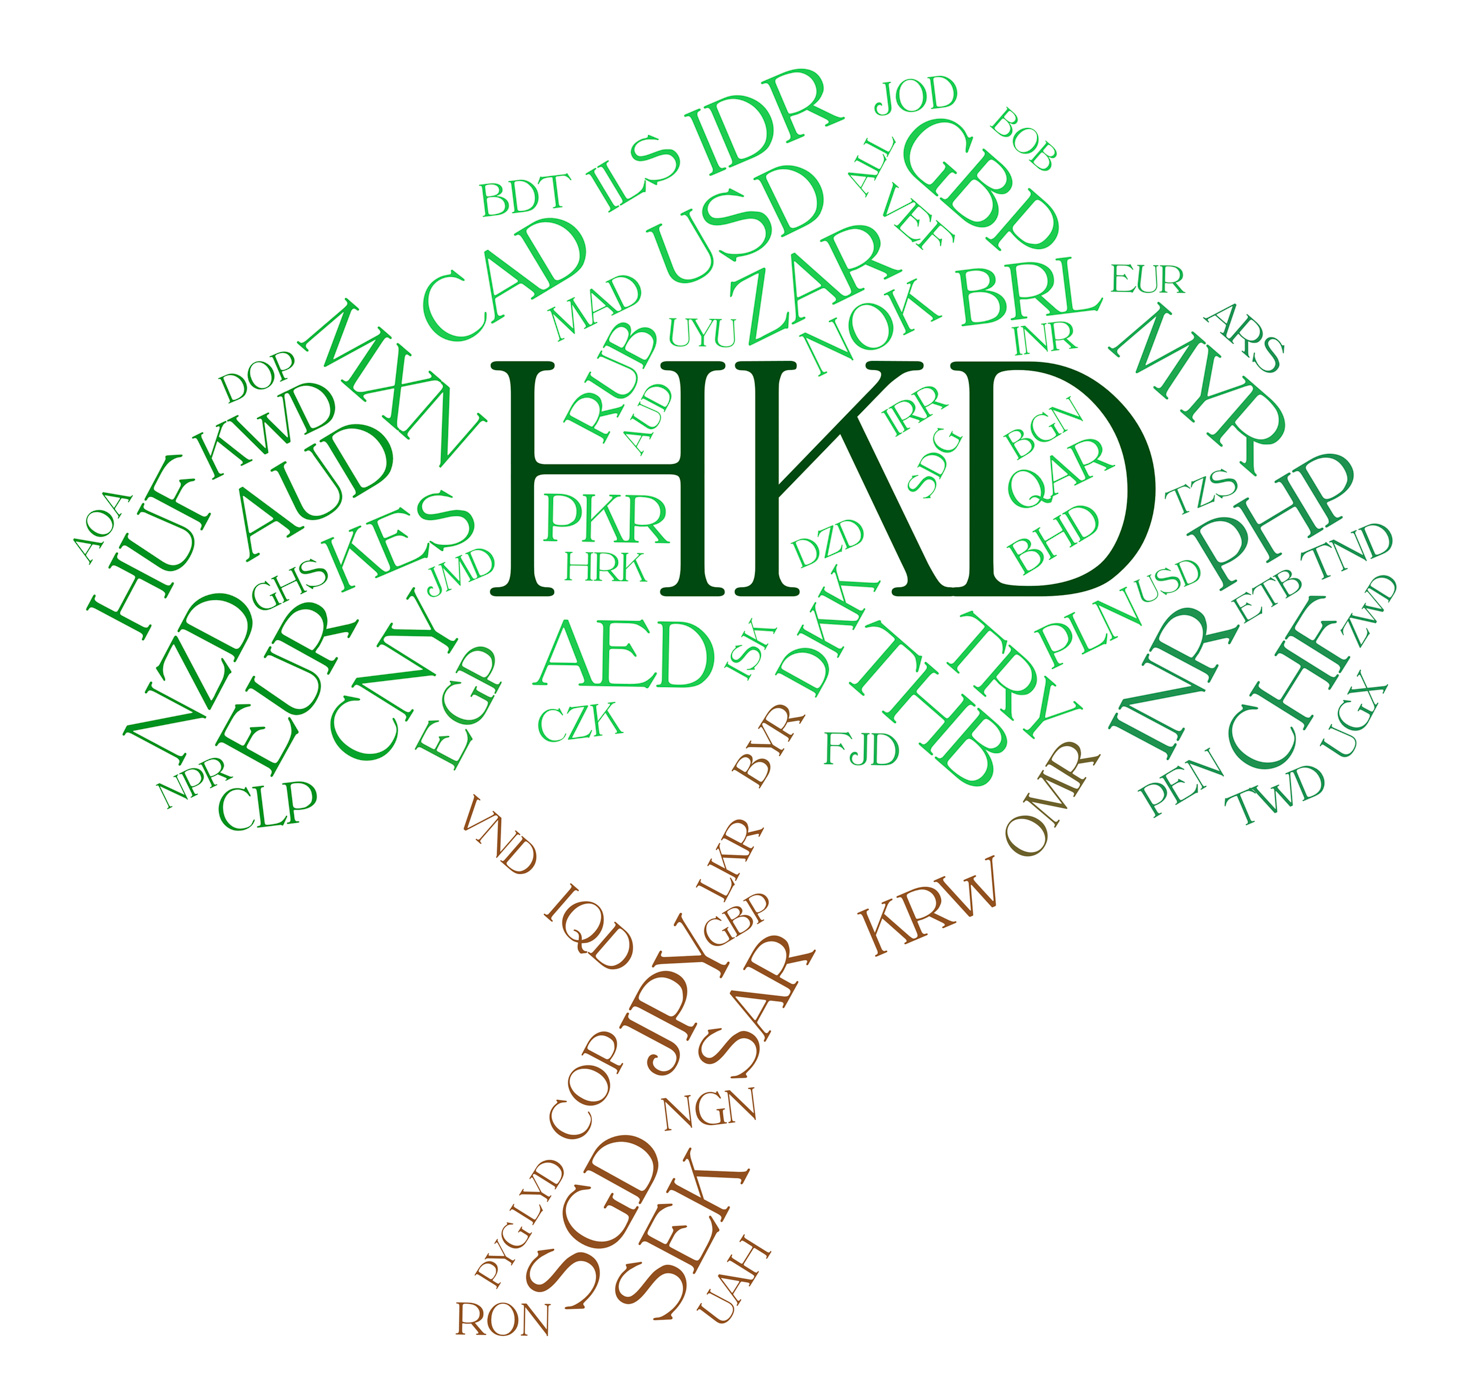 Hkd Currency Means Hong Kong Dollar And Broker, Banknote, Forextrading, Words, Wordcloud, HQ Photo